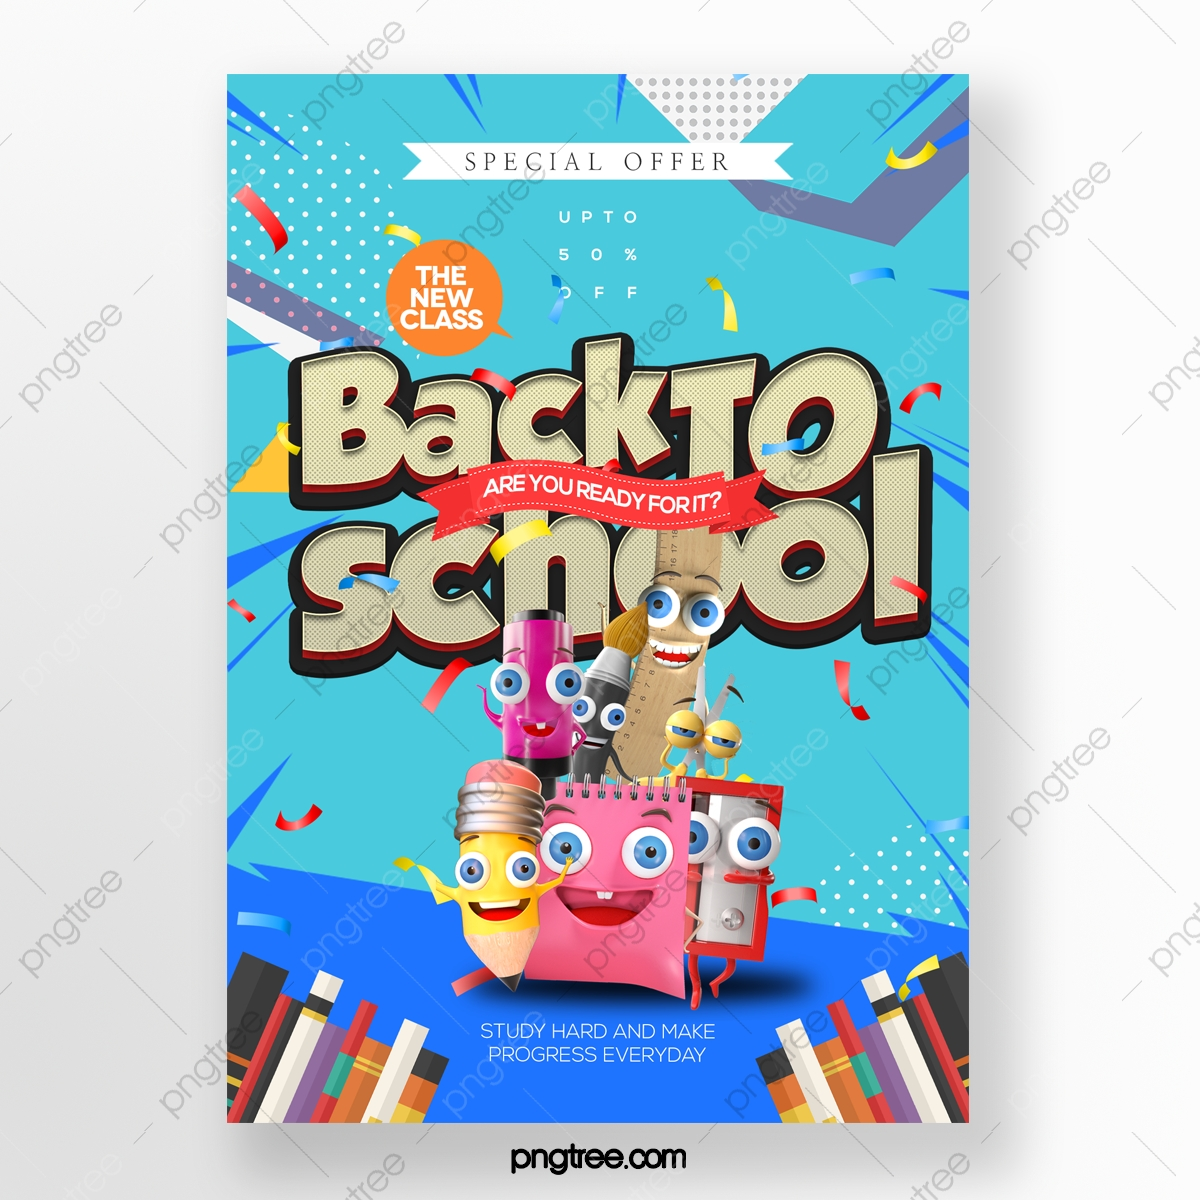 Cartoon Fashion Cute Style Back To School Promotion Poster Template Download On Pngtree